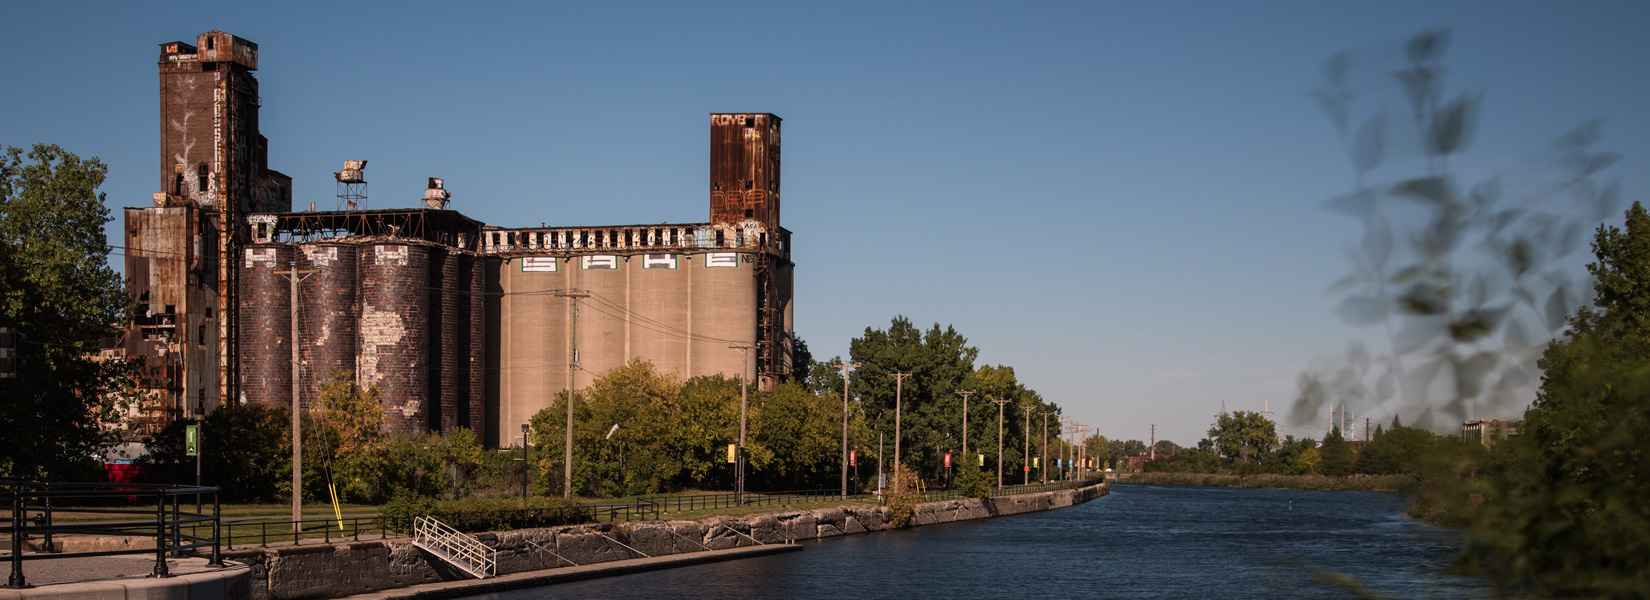 The old Canada Malting plant